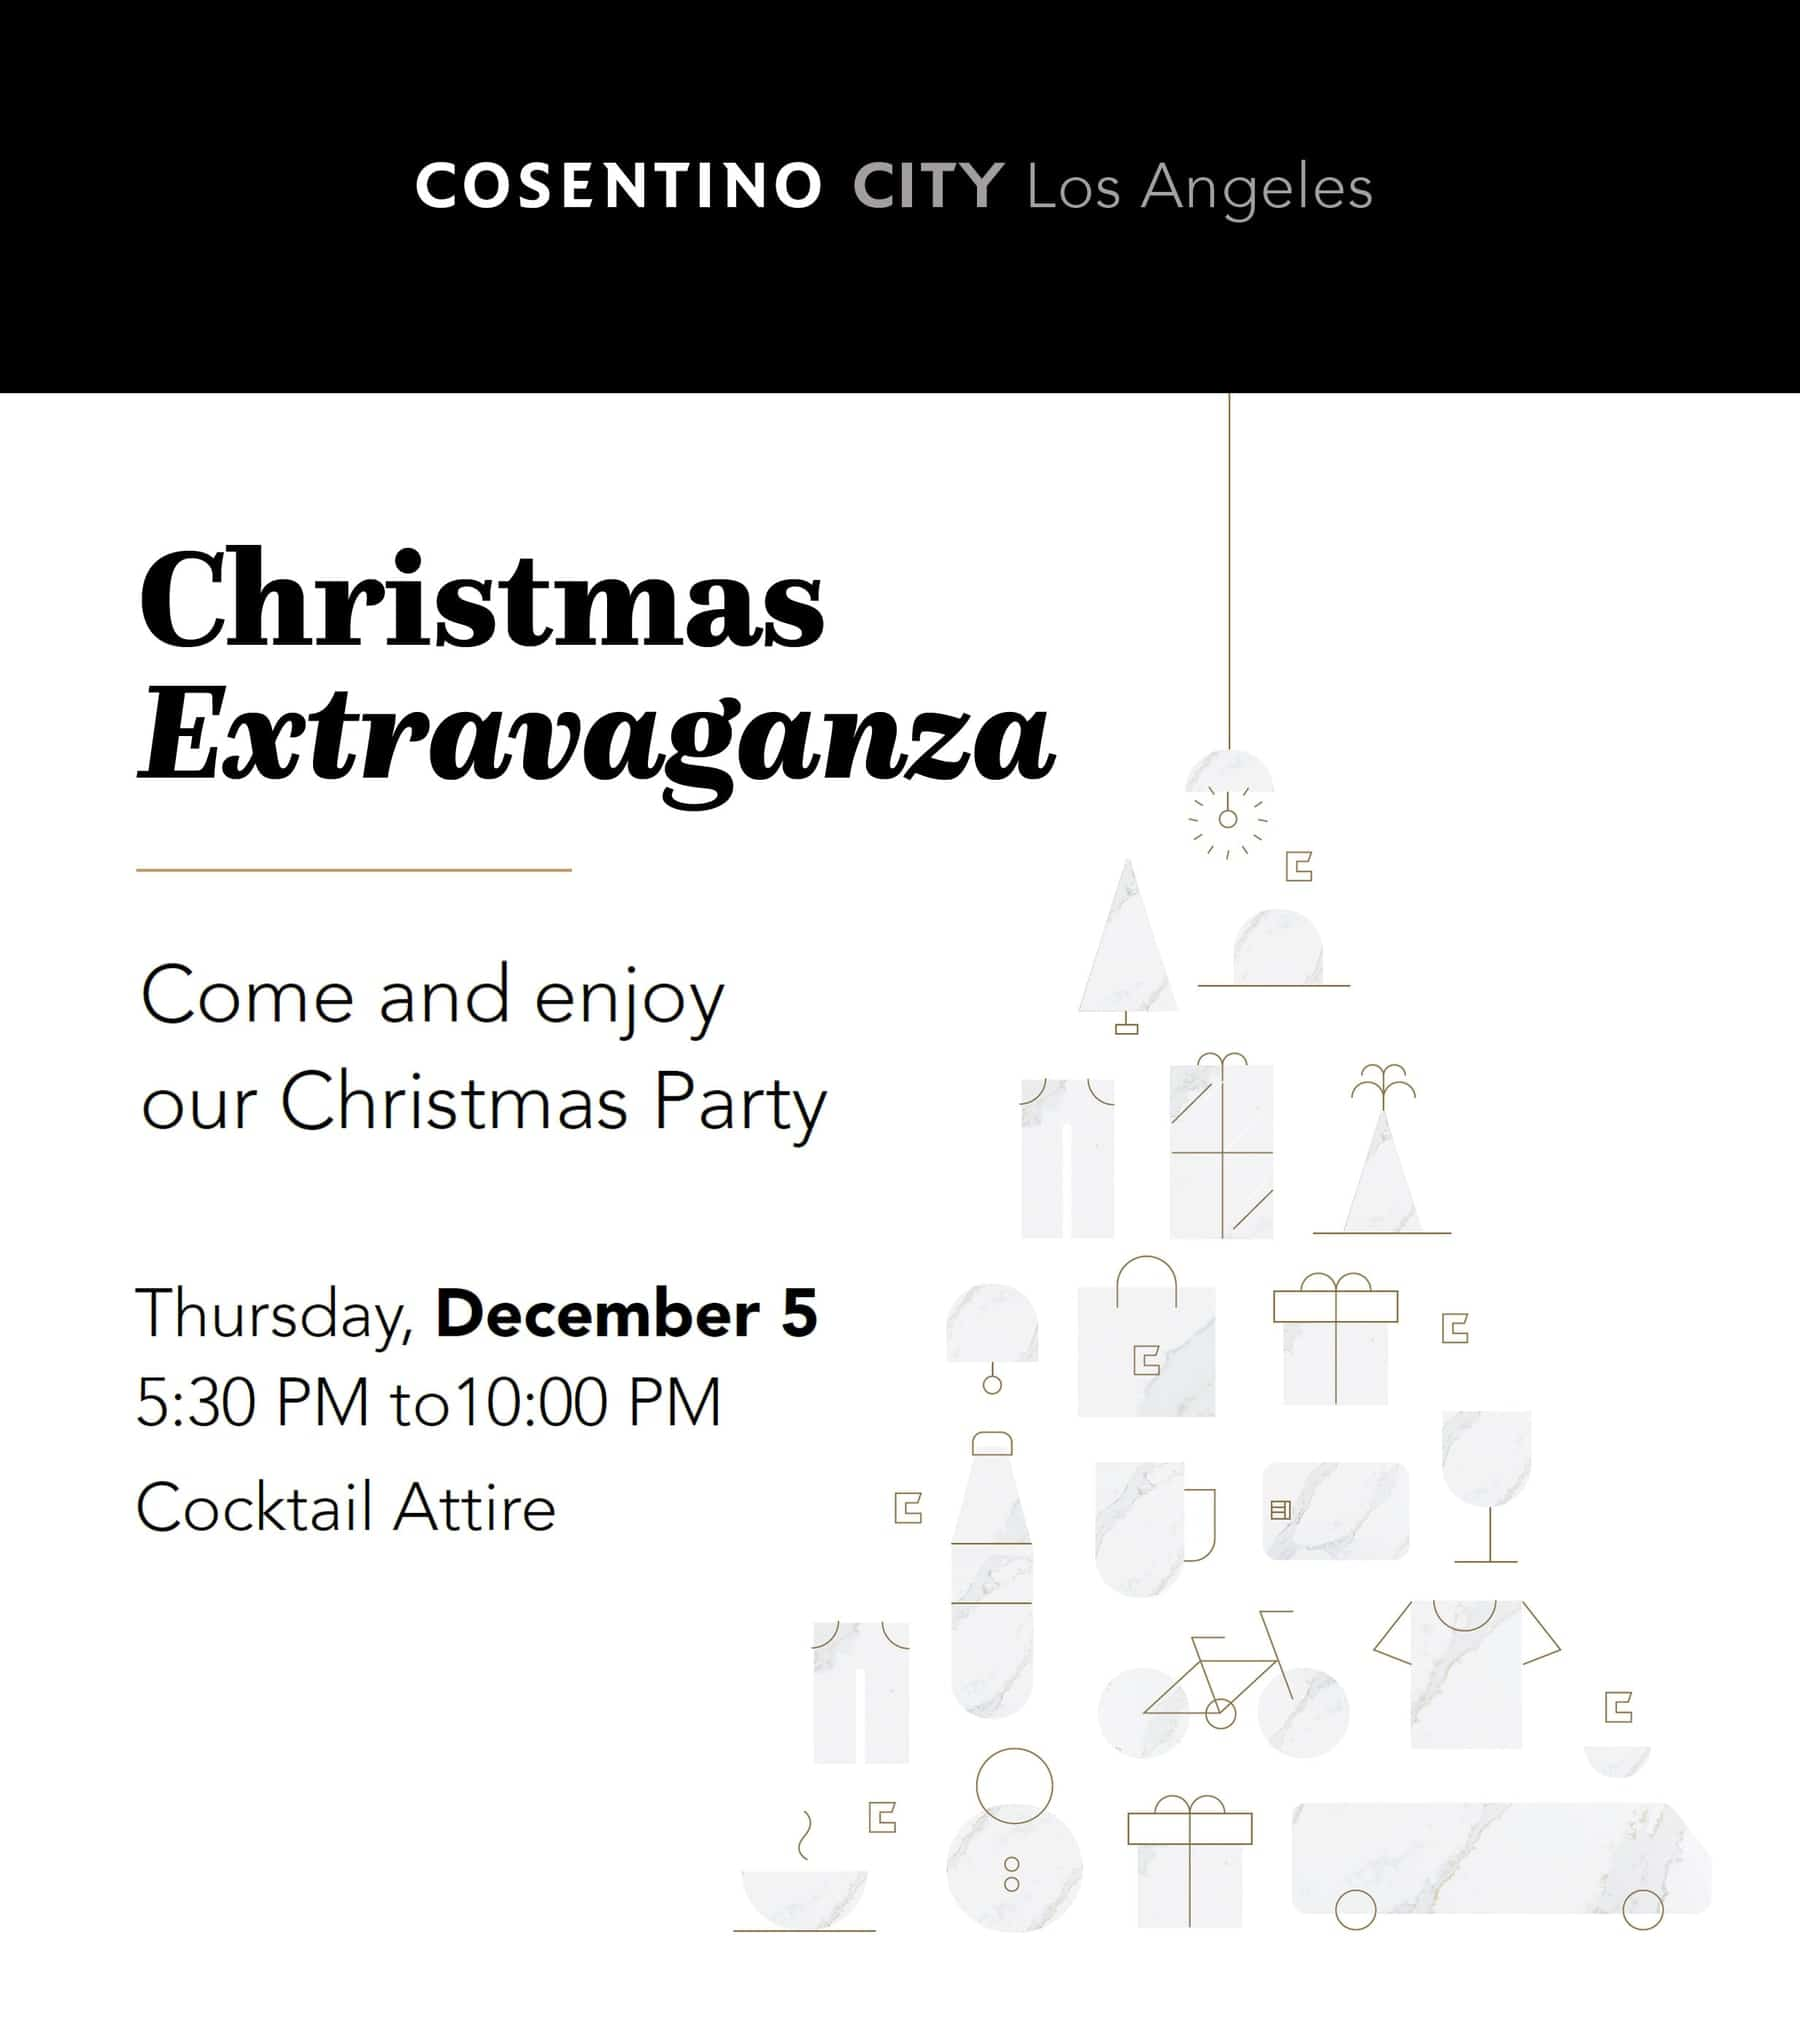 consentinos holiday party and toy drive information for los angeles